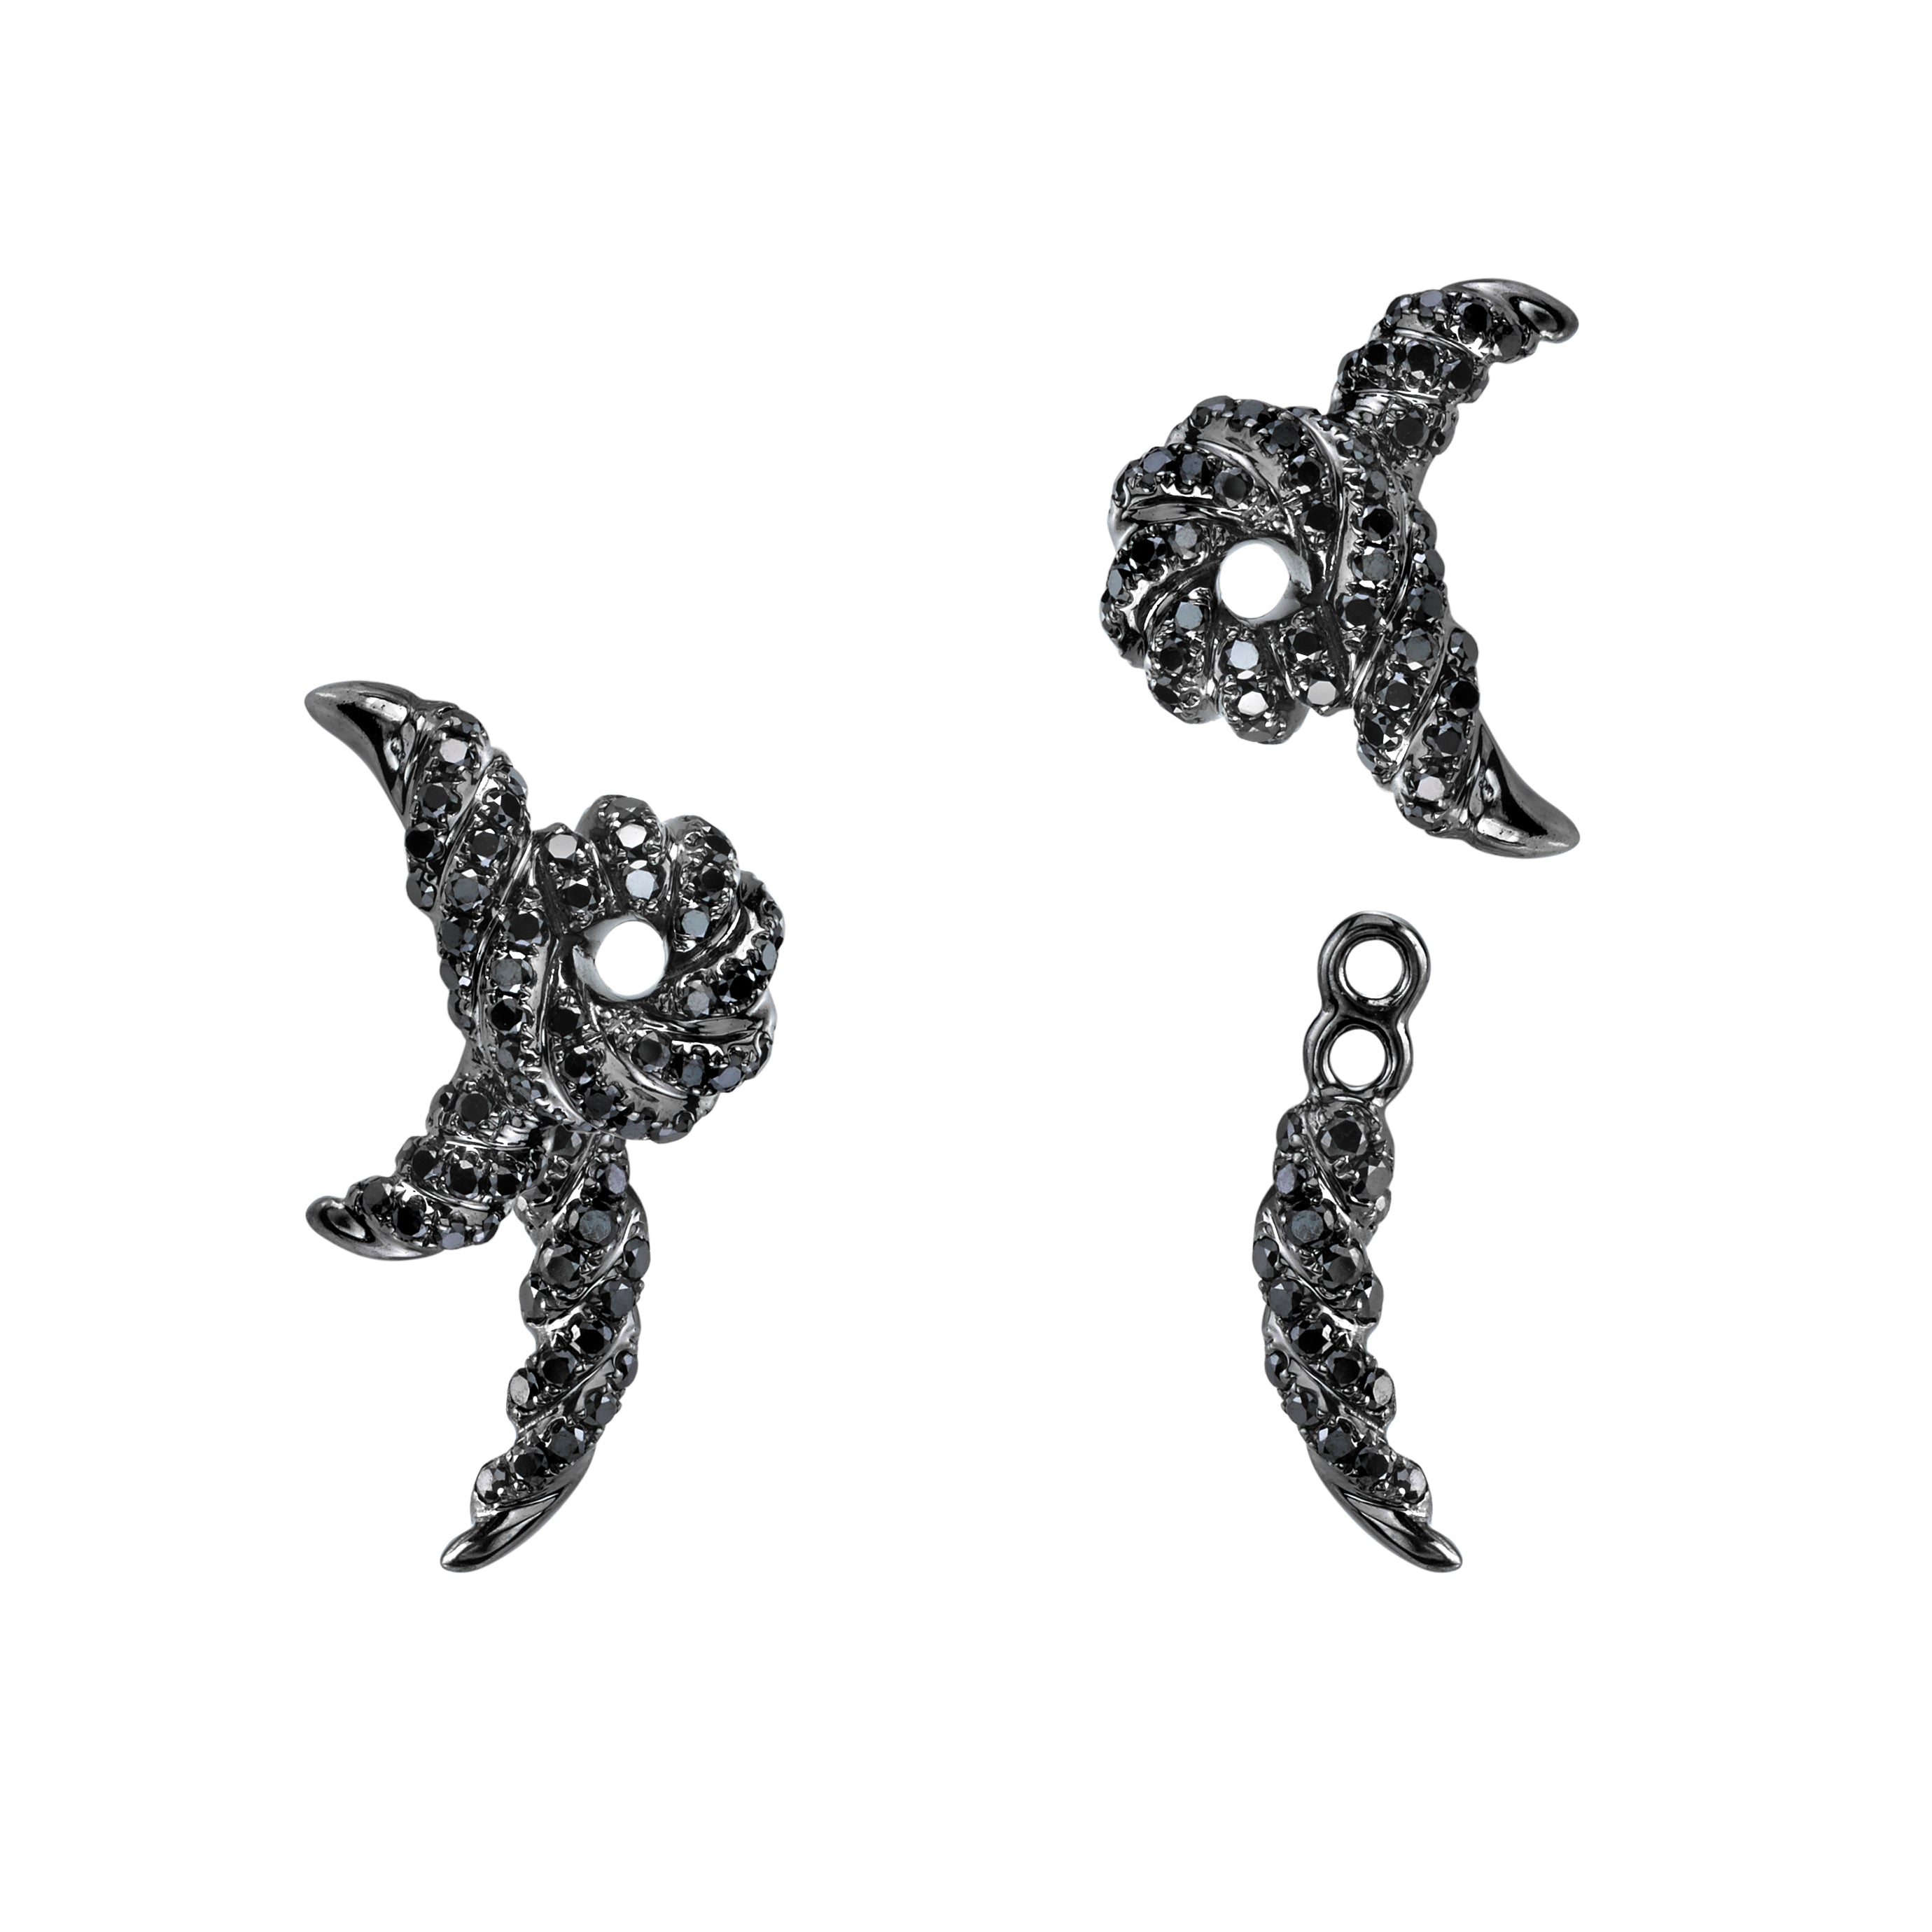 Twisted Markhor Earrings